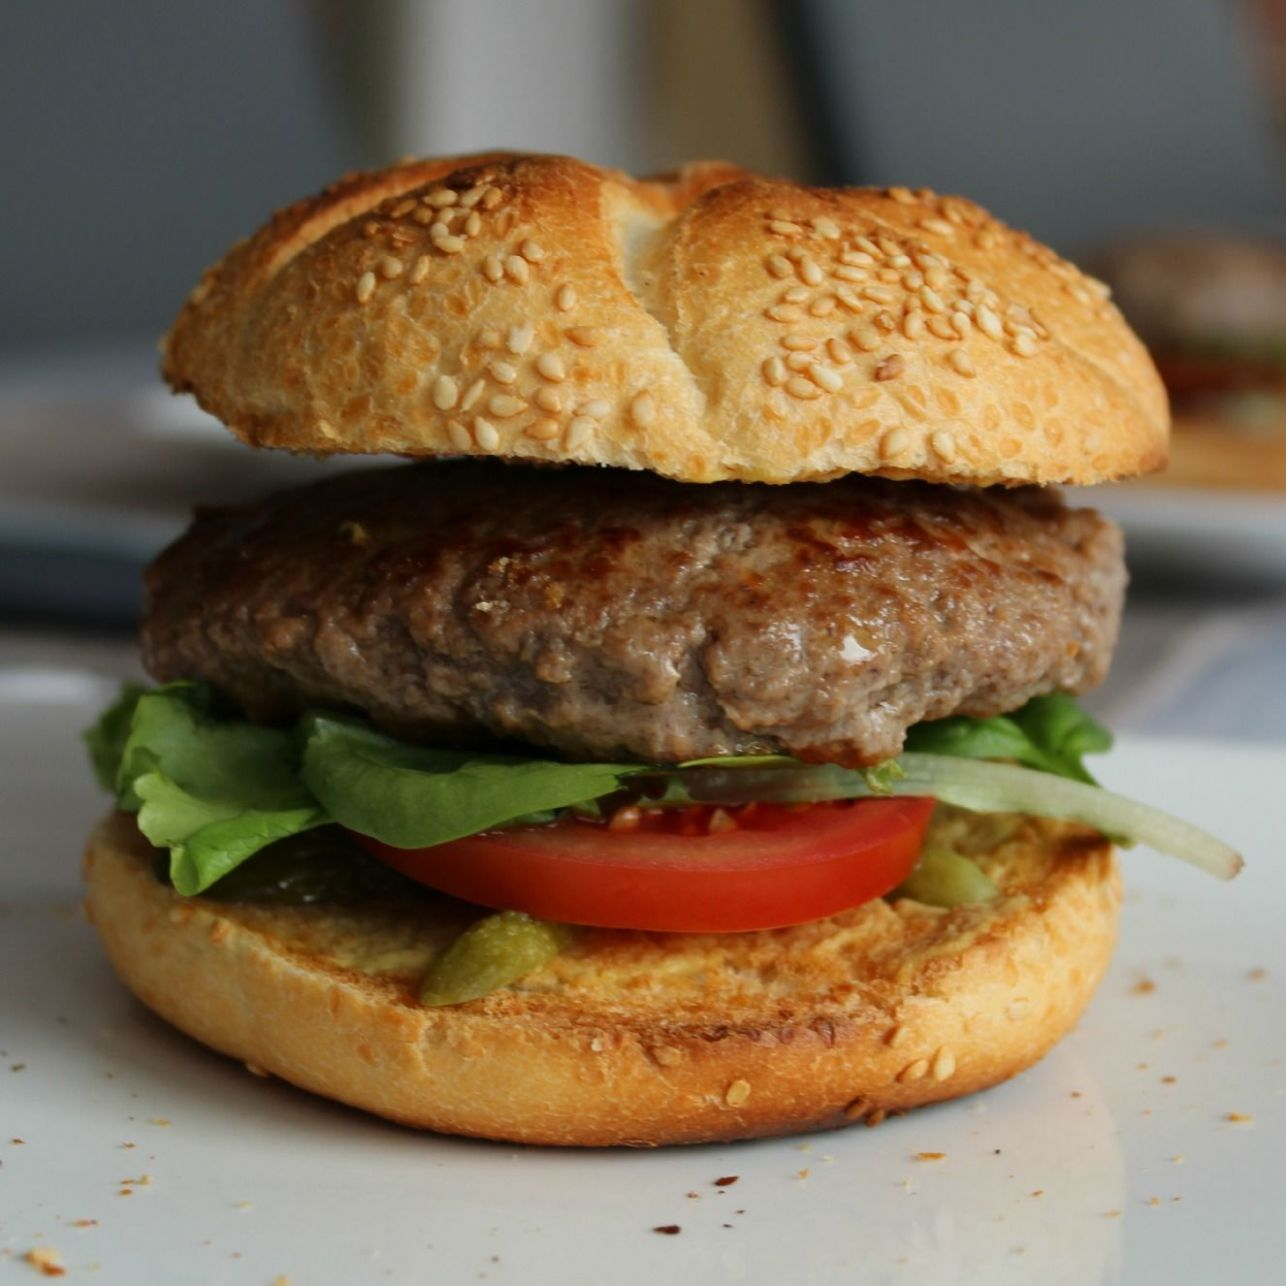 Beef burger recipe - All recipes UK - Recipes Beef Burgers